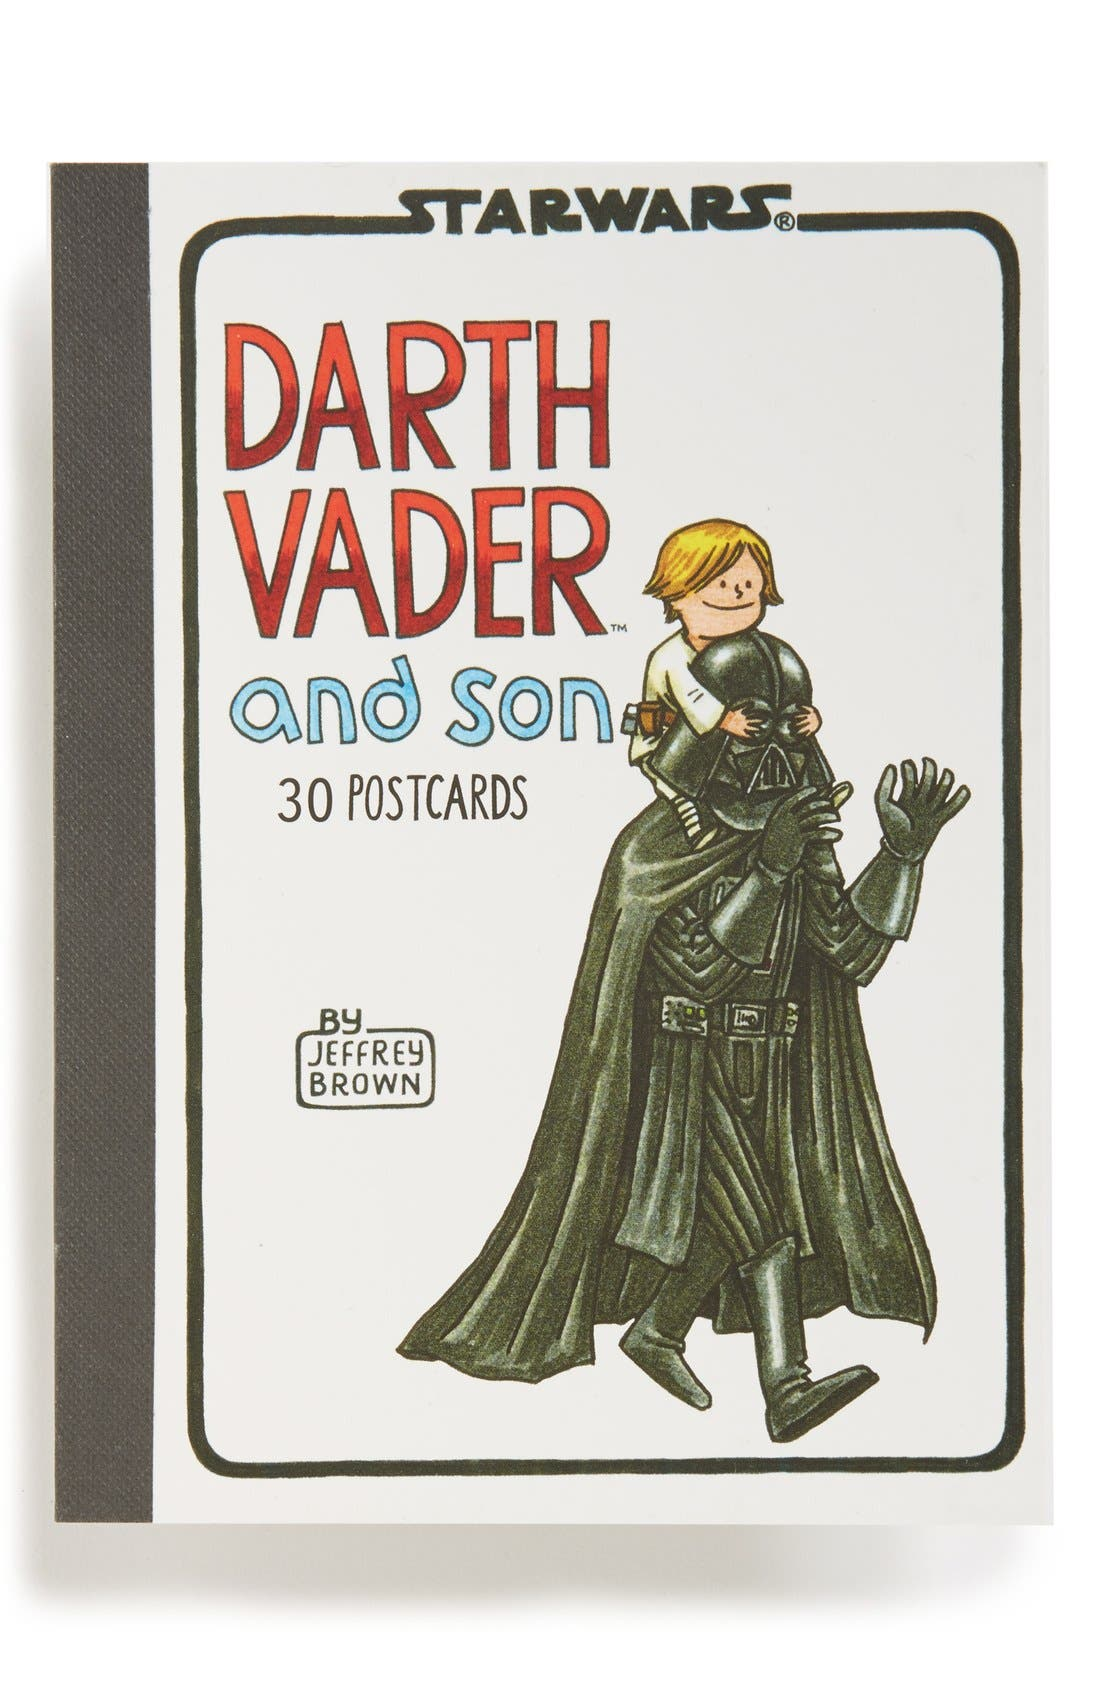 Alternate Image 1 Selected - Chronicle Books 'Darth Vader and Son' Postcards (Set of 30)